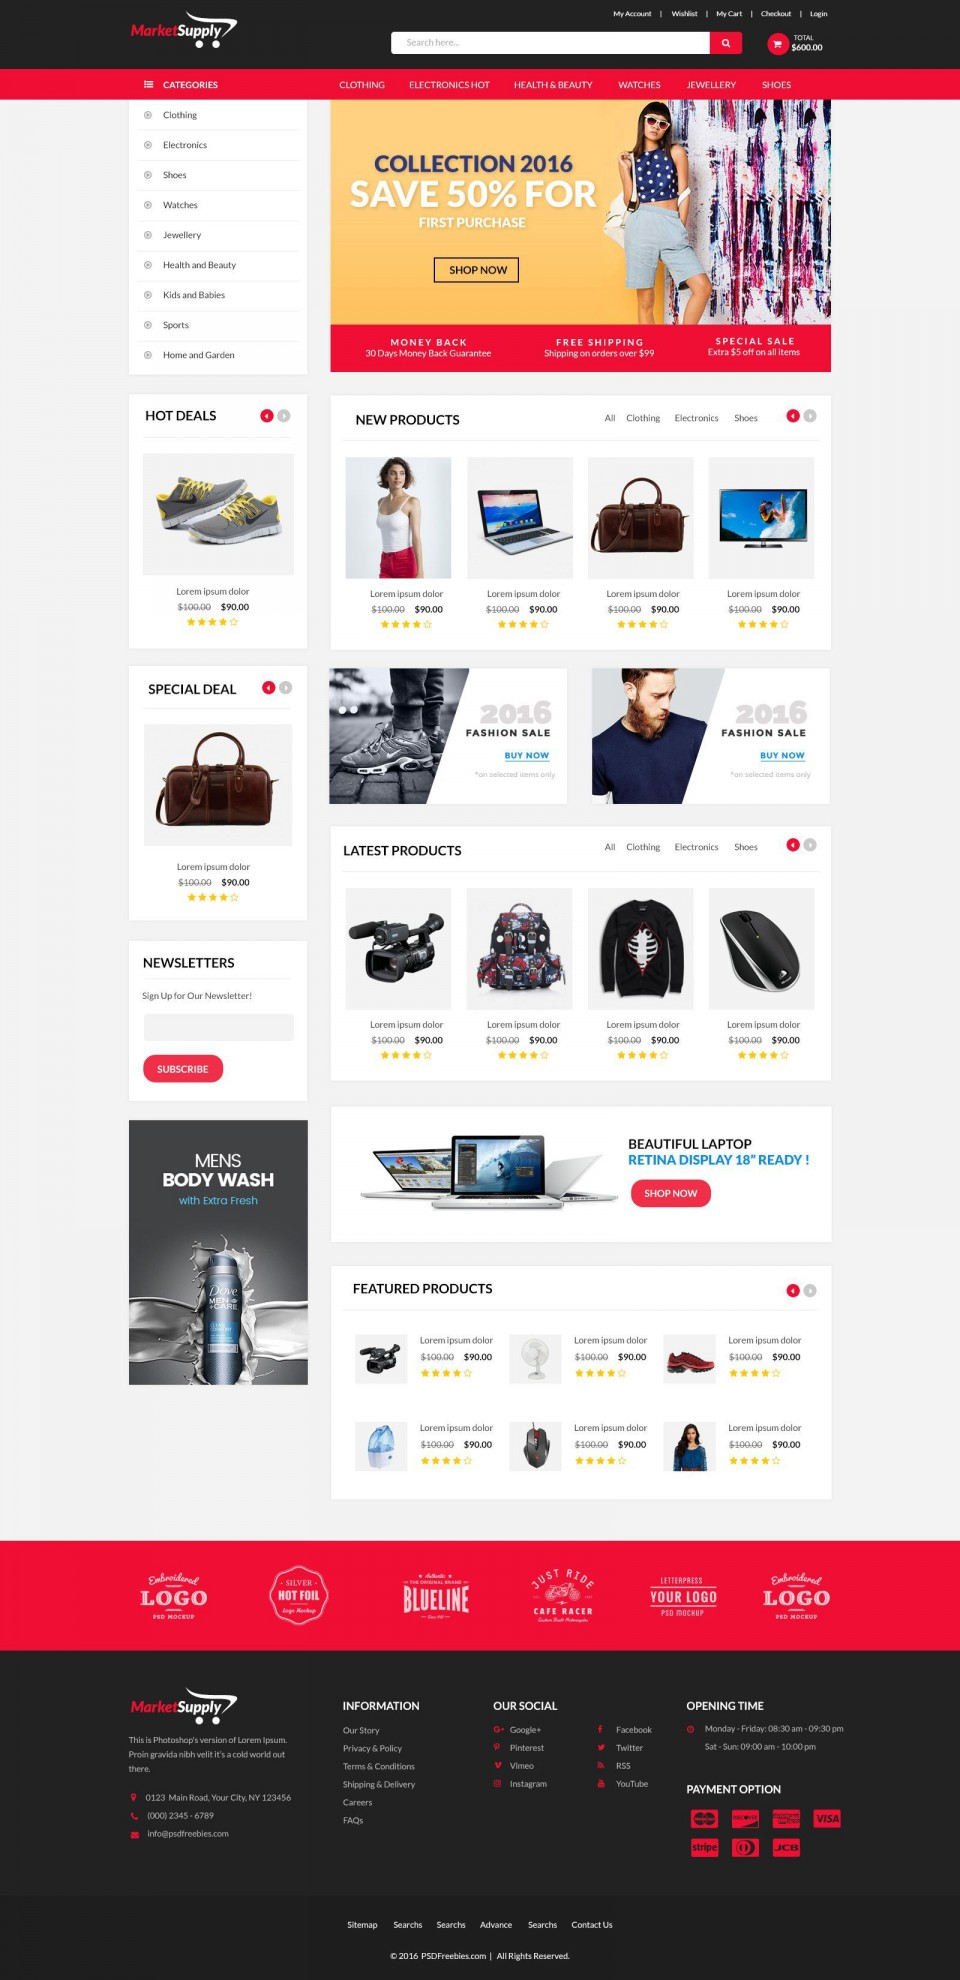 000 Shocking Free Php Website Template Idea  Download And Cs Full Theme960